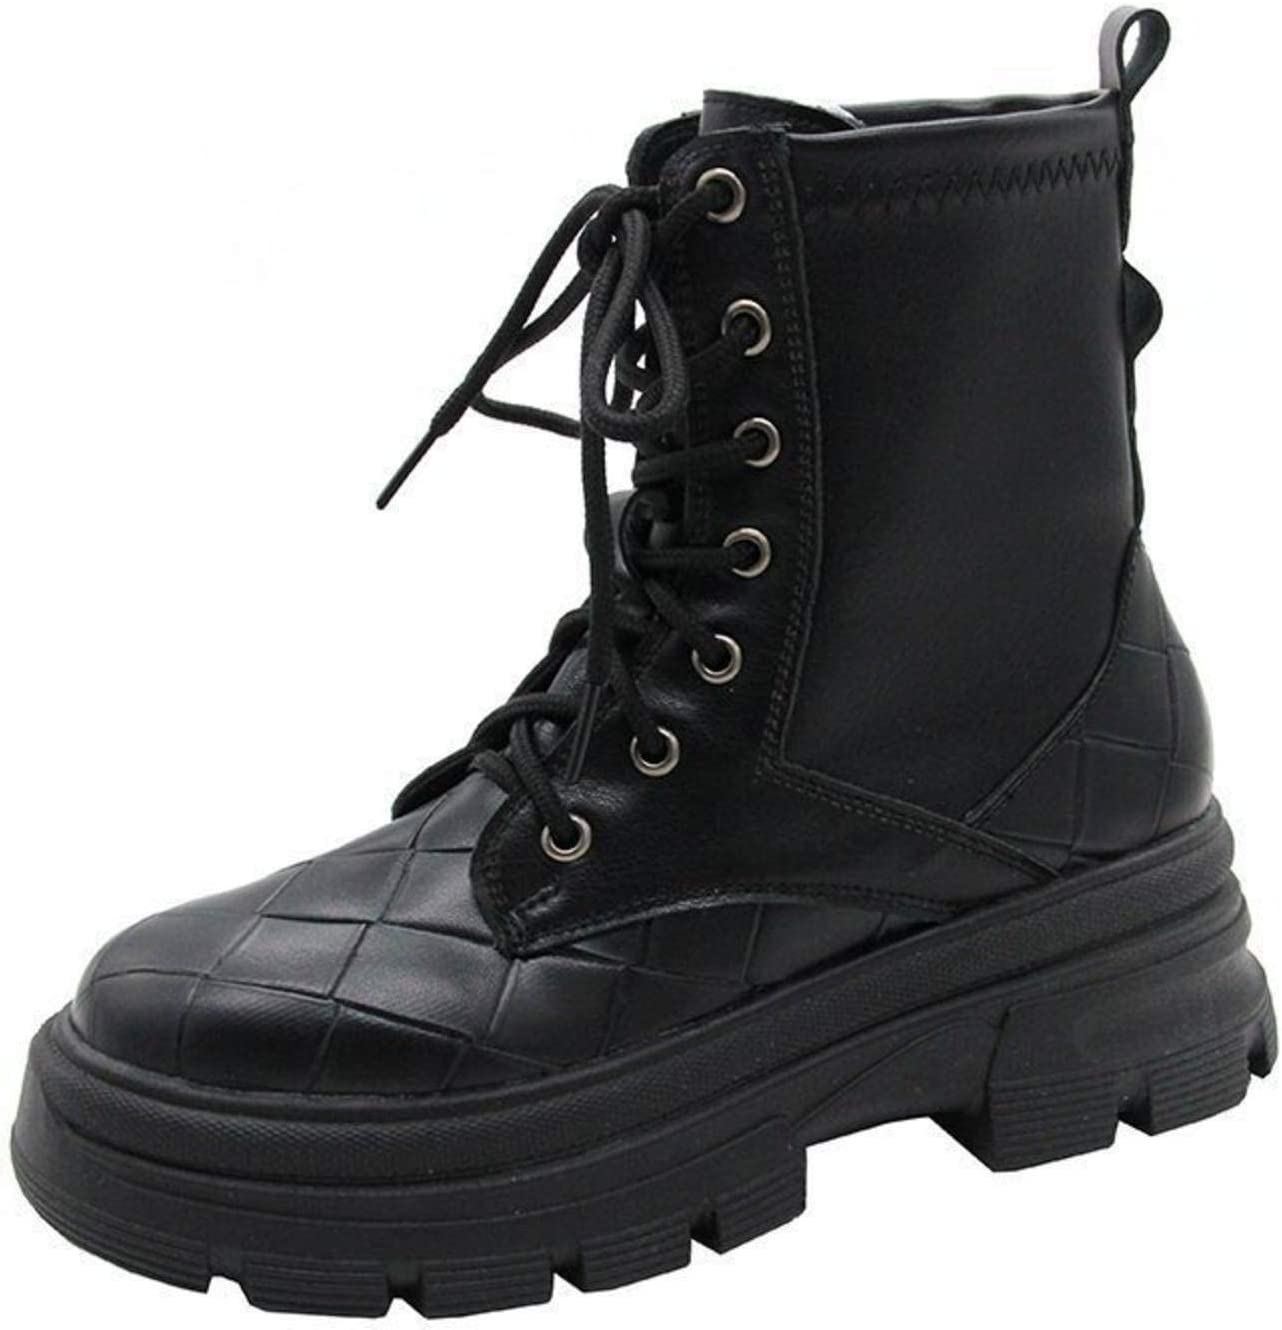 Boots for Girls Lady Kids with PU Snow Boots Stylish Flat Bottomed Shoes High Top Warm Non Slip Outdoor Motorcycle